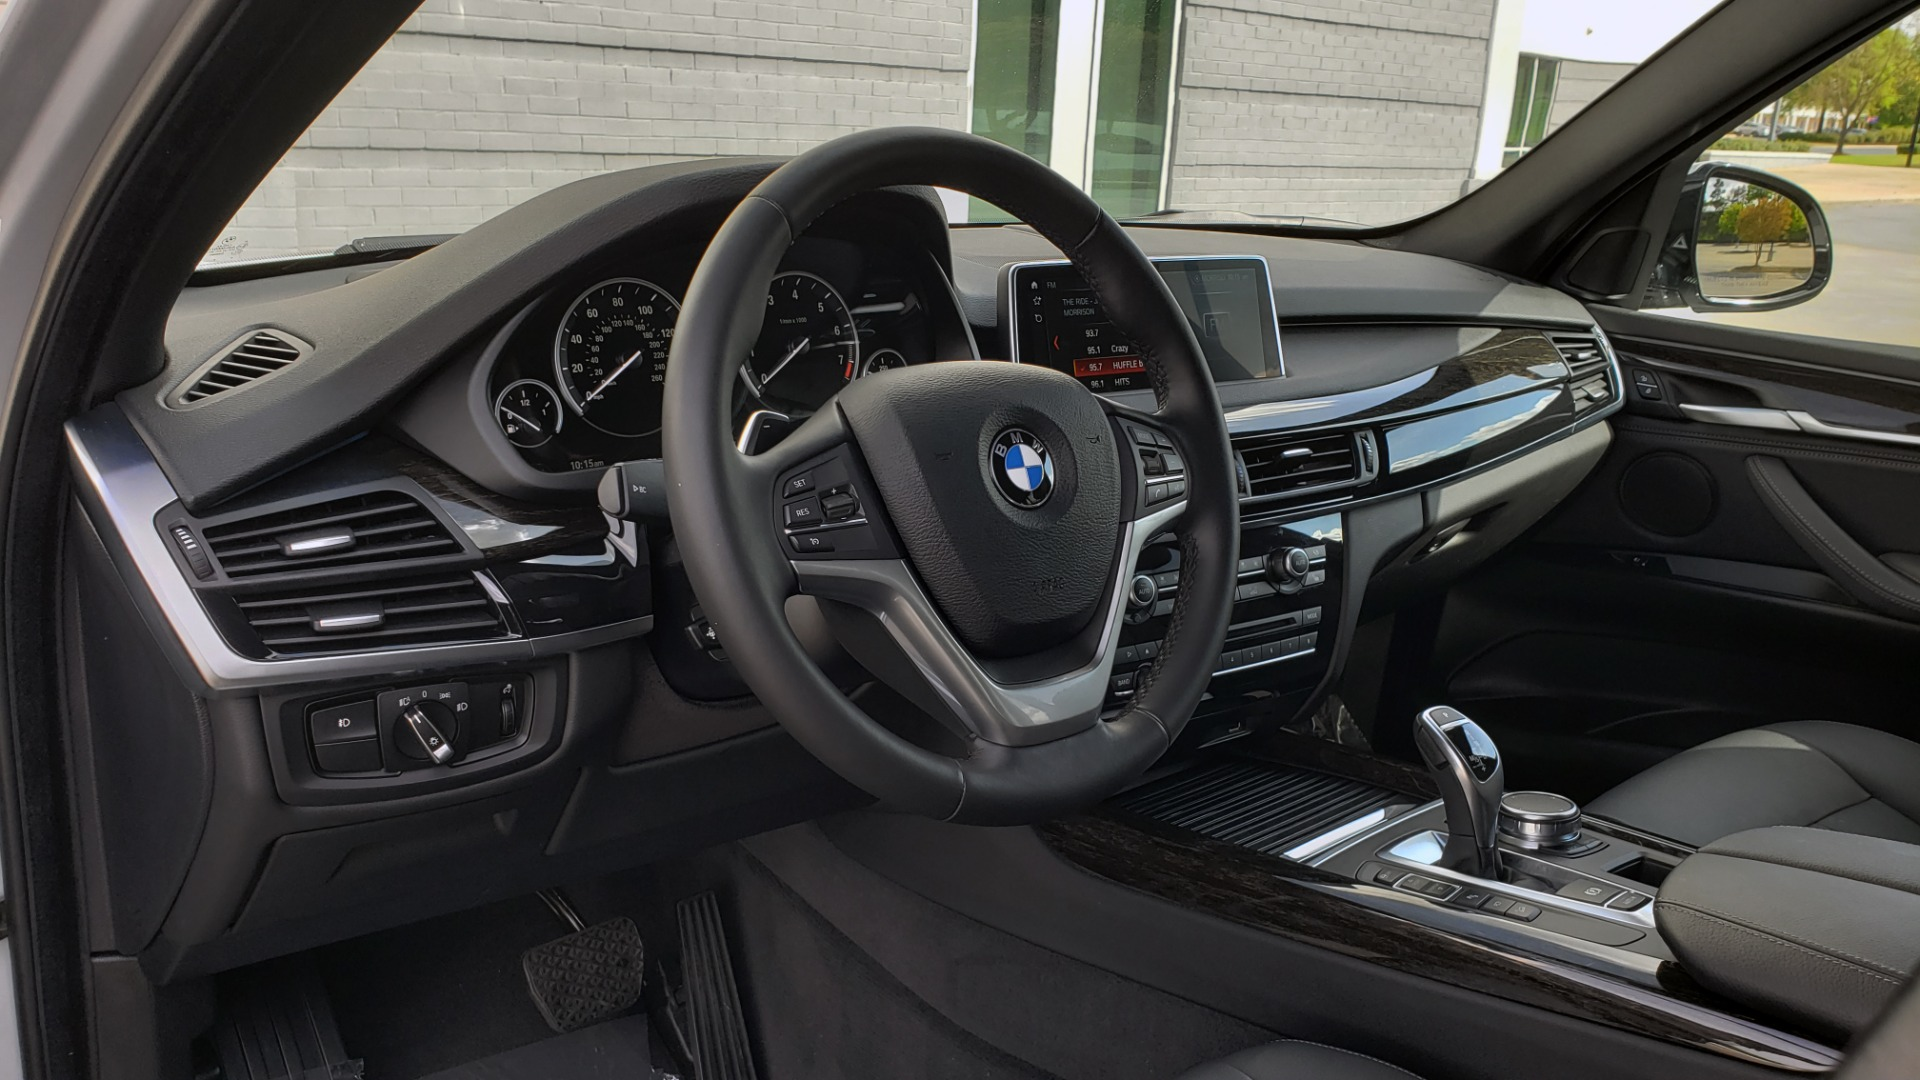 Used 2018 BMW X5 XDRIVE35I PREMIUM / NAV / PANO-ROOF / DRIVER ASST / REARVIEW for sale Sold at Formula Imports in Charlotte NC 28227 41